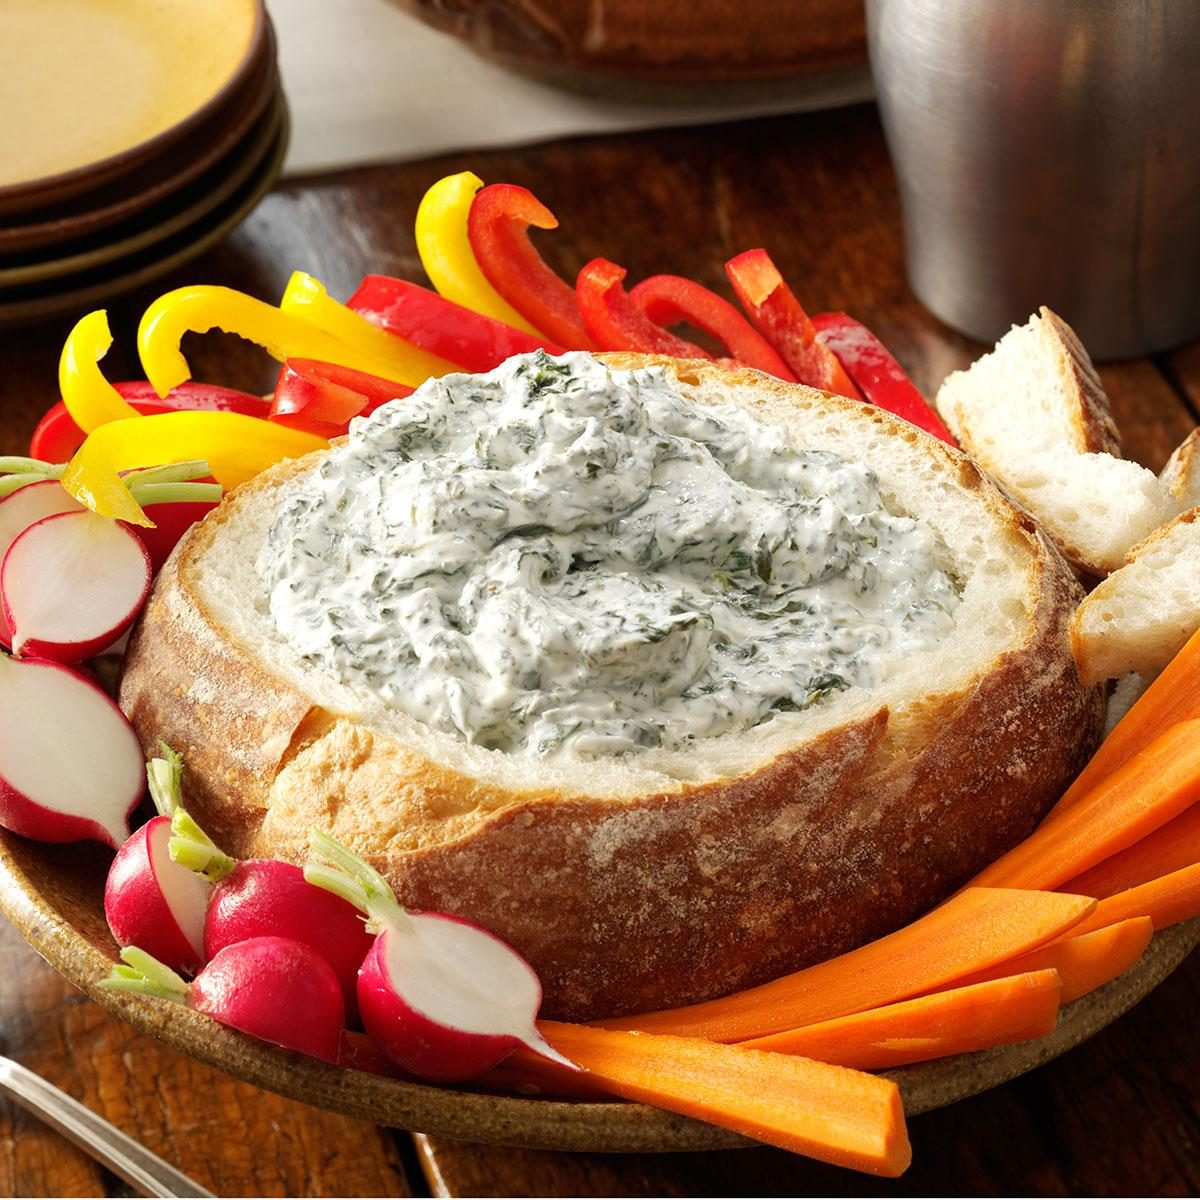 Spinach Dip is the classic of all dips in my book. You will see this dip at every family gathering we attend. Being able to serve it in a crusty bread bowl makes it even better yet! Bread bowl dips are perfect for any occasion. They are easy to make and always taste great. This Spinach Dip recipe even has a .